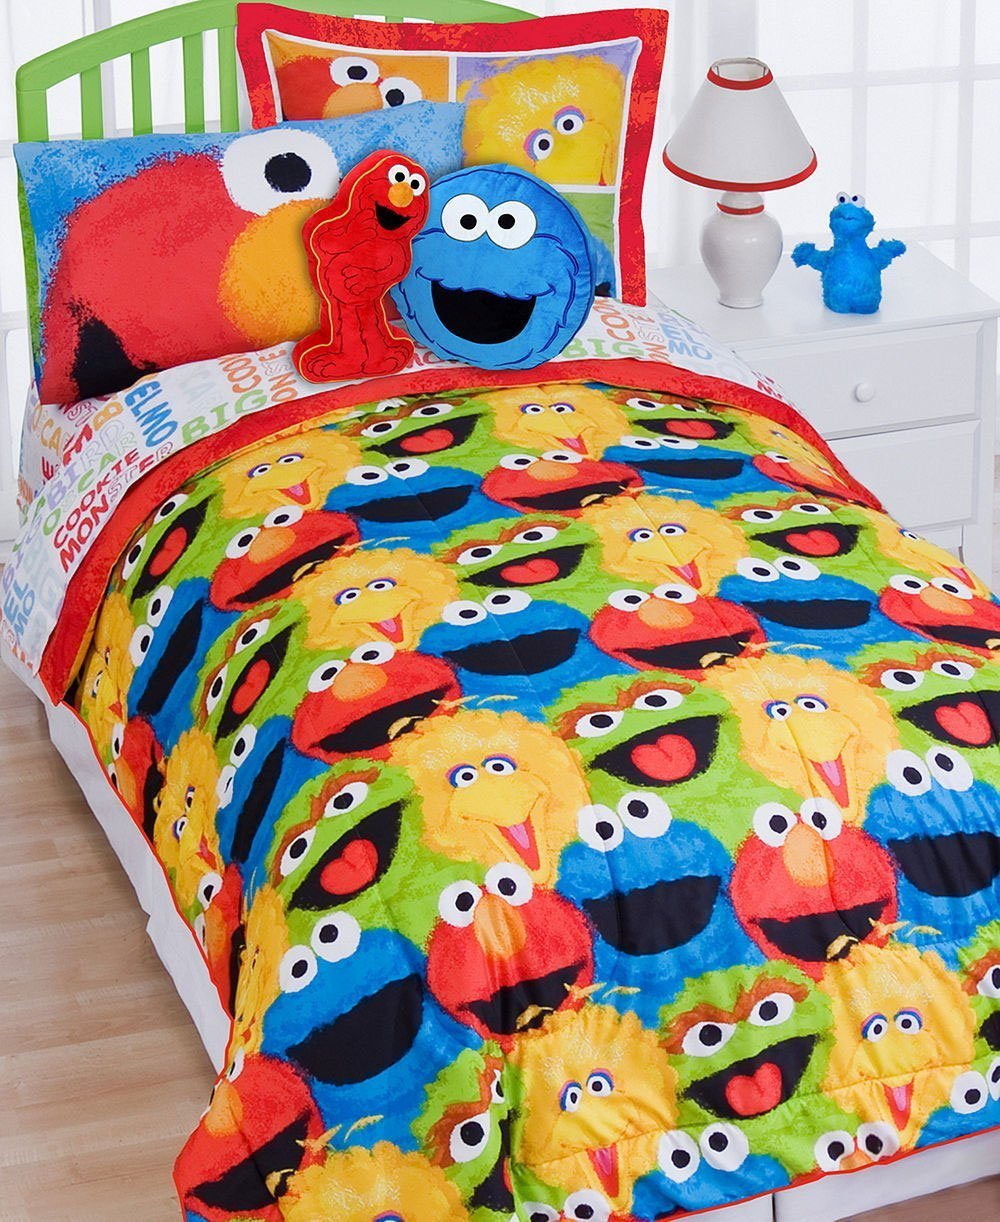 Elmo Toddler Bedding Set - Home Furniture Design